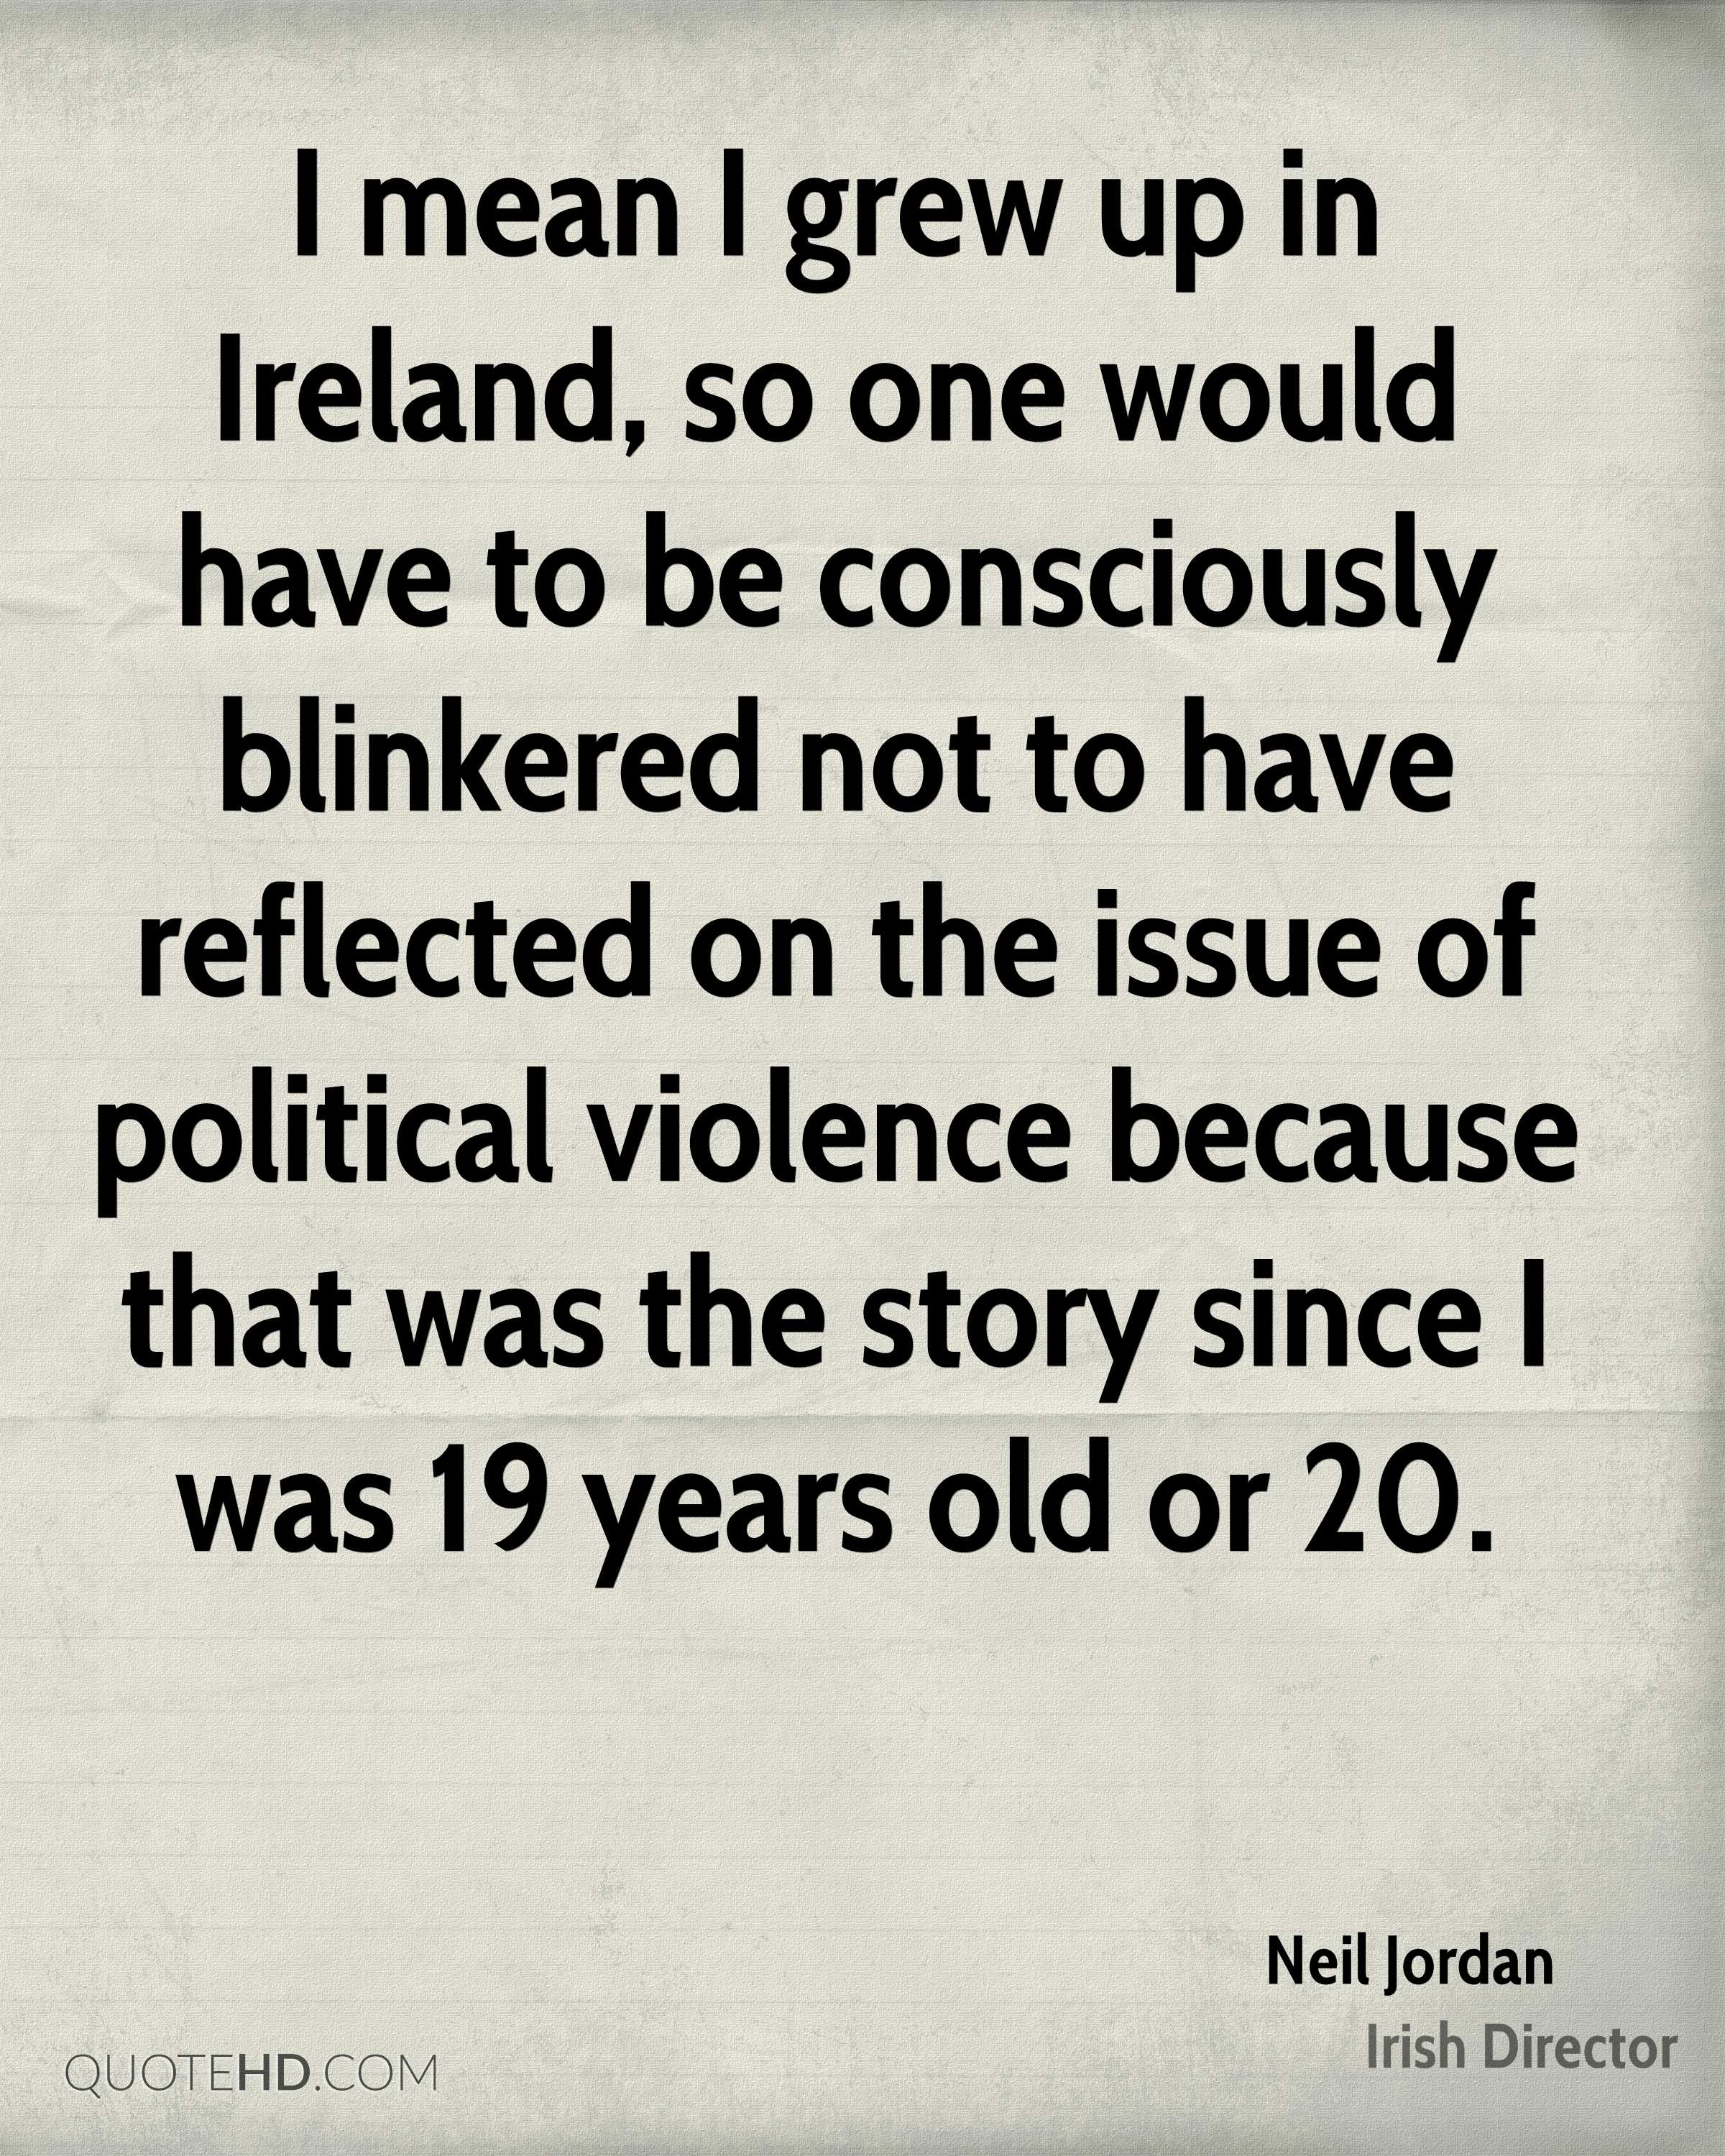 I mean I grew up in Ireland, so one would have to be consciously blinkered not to have reflected on the issue of political violence because that was the story since I was 19 years old or 20.